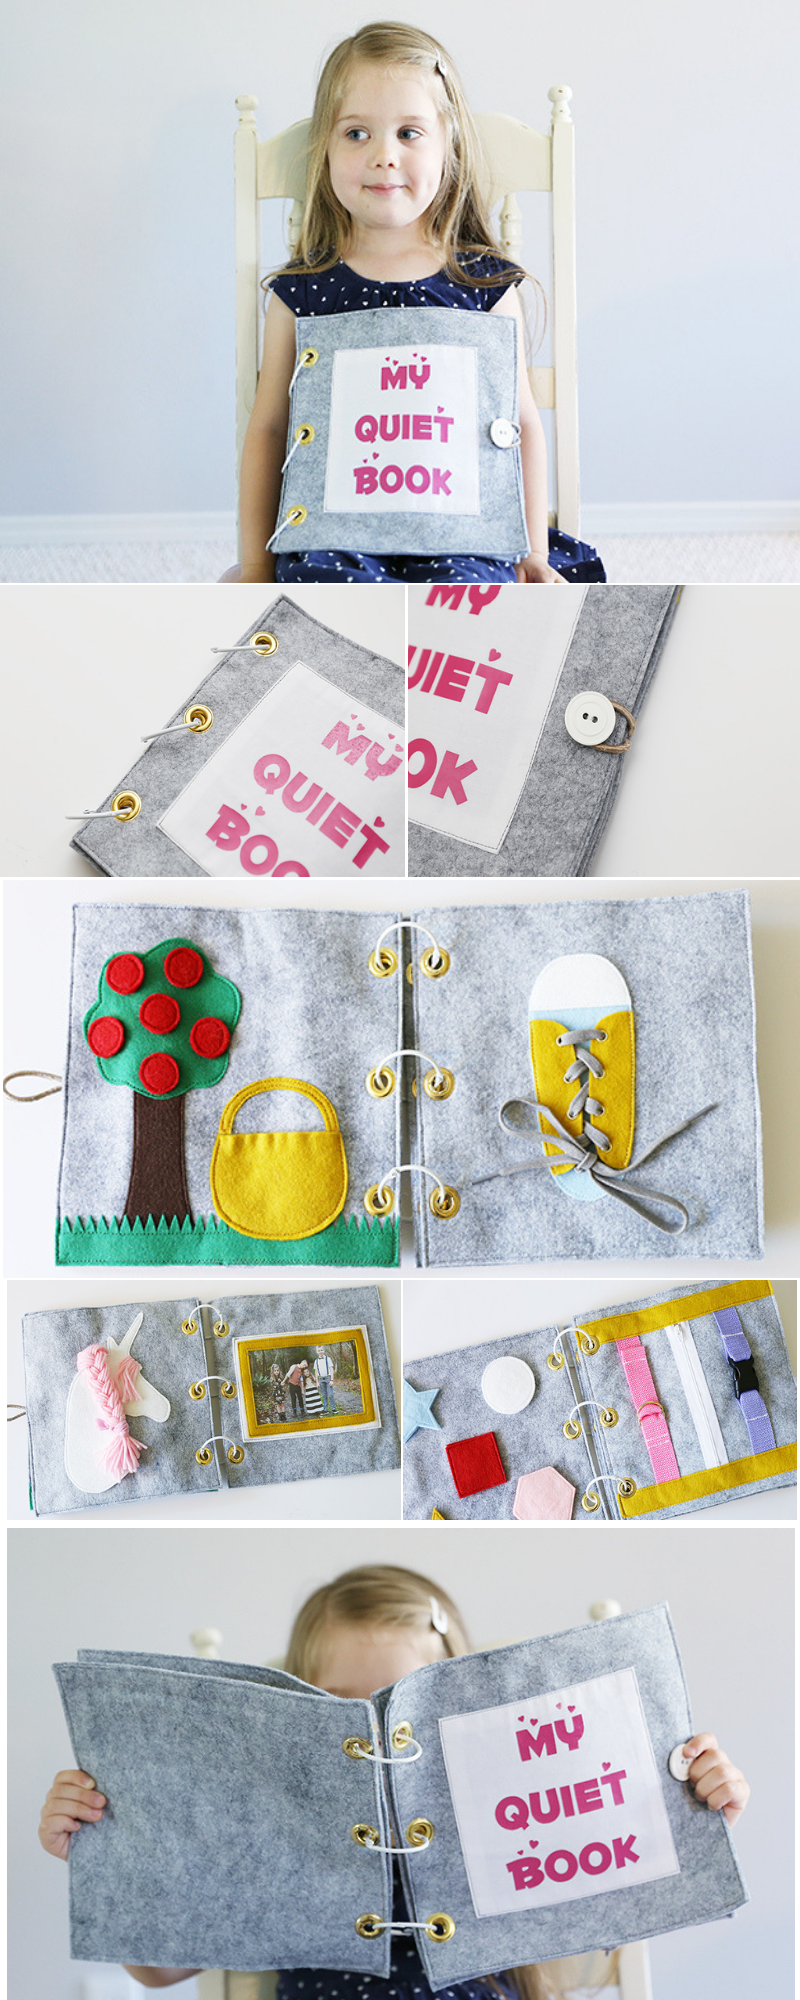 DIY Quiet Book für Kinder